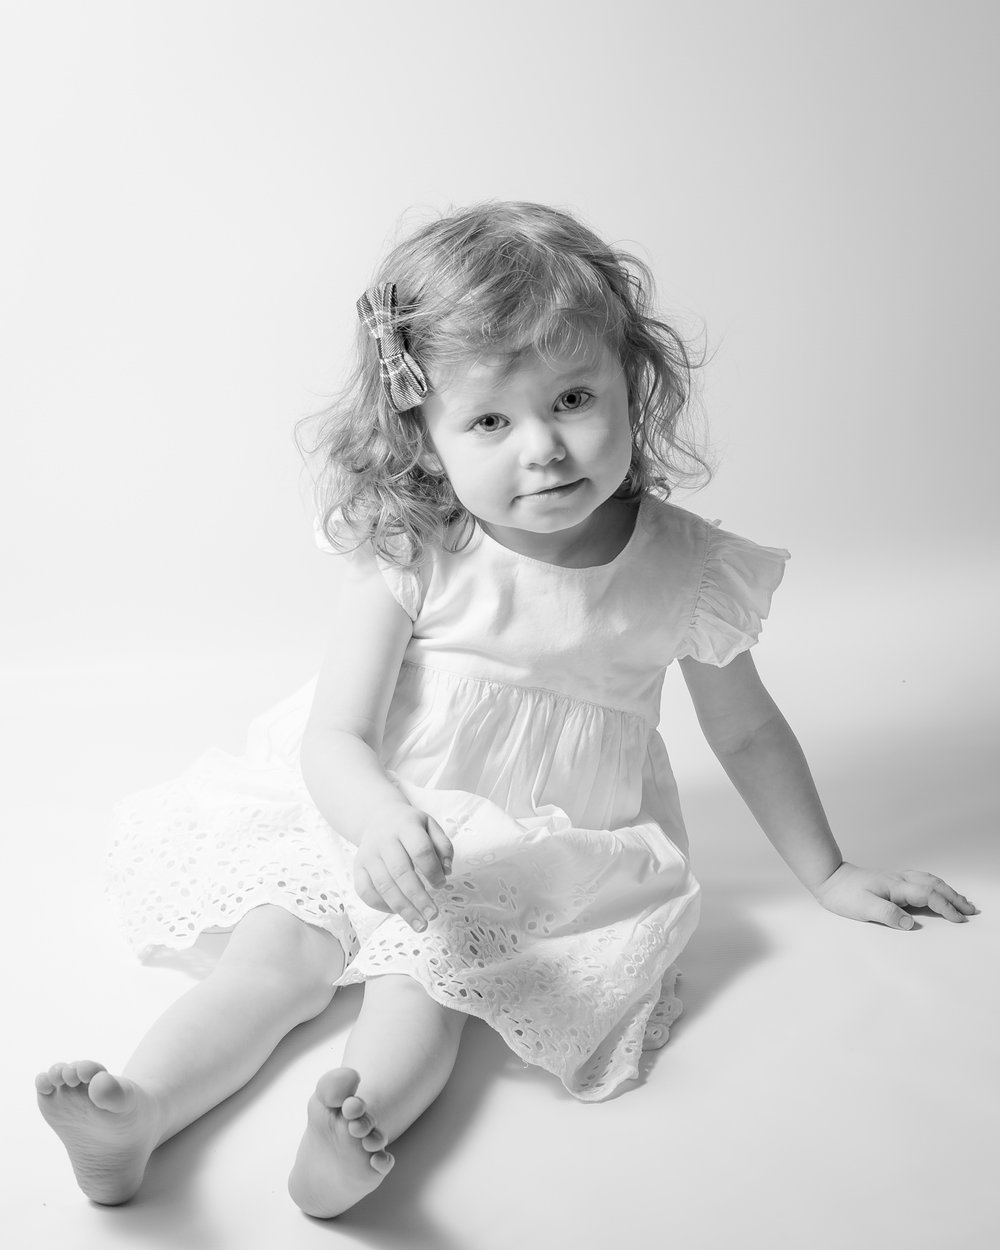 Toddler sitting in studio  | Children's Photography